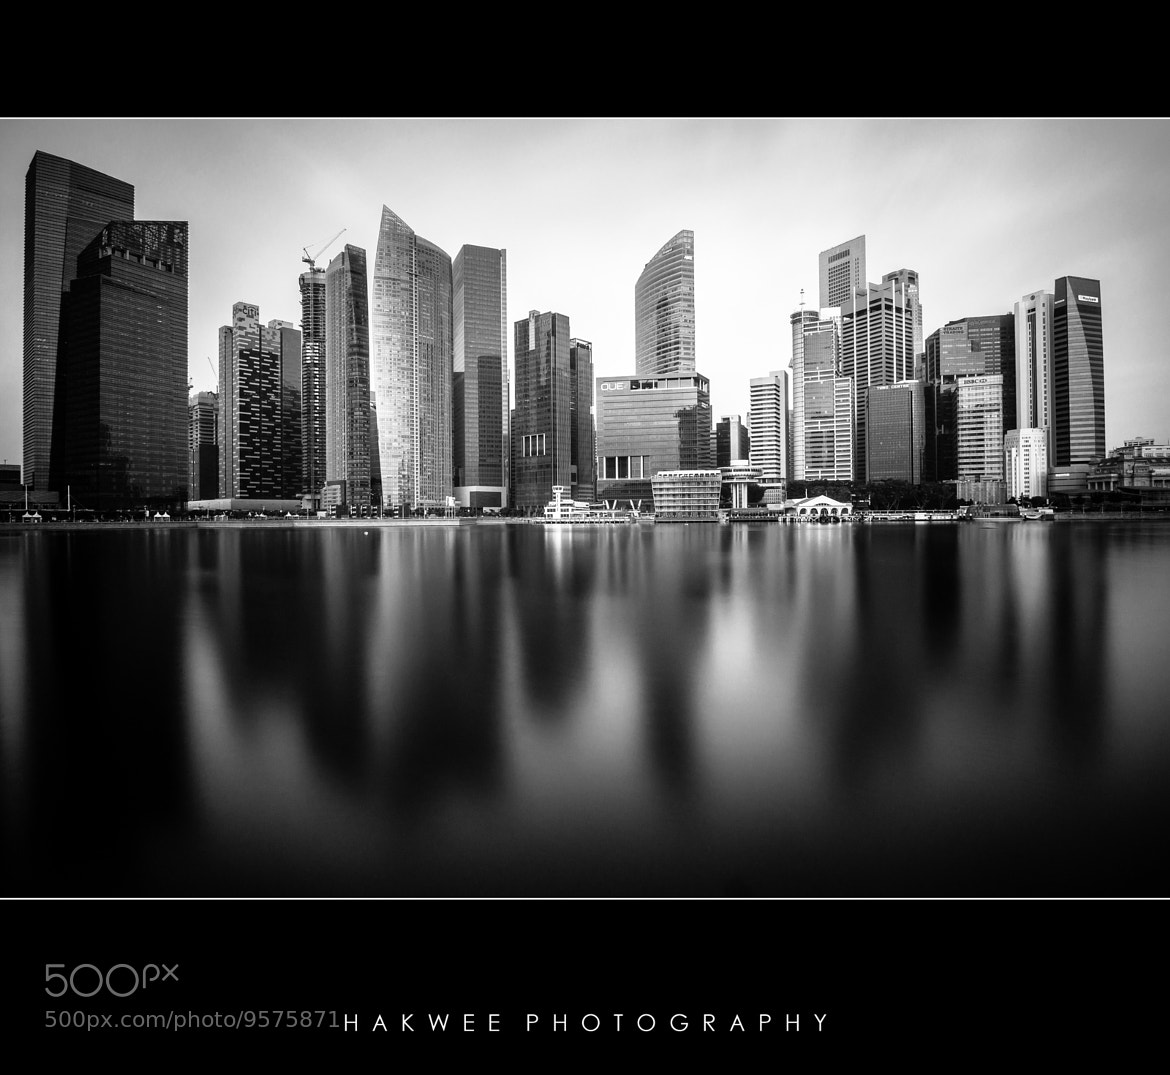 Photograph Sin city by Hak Wee on 500px